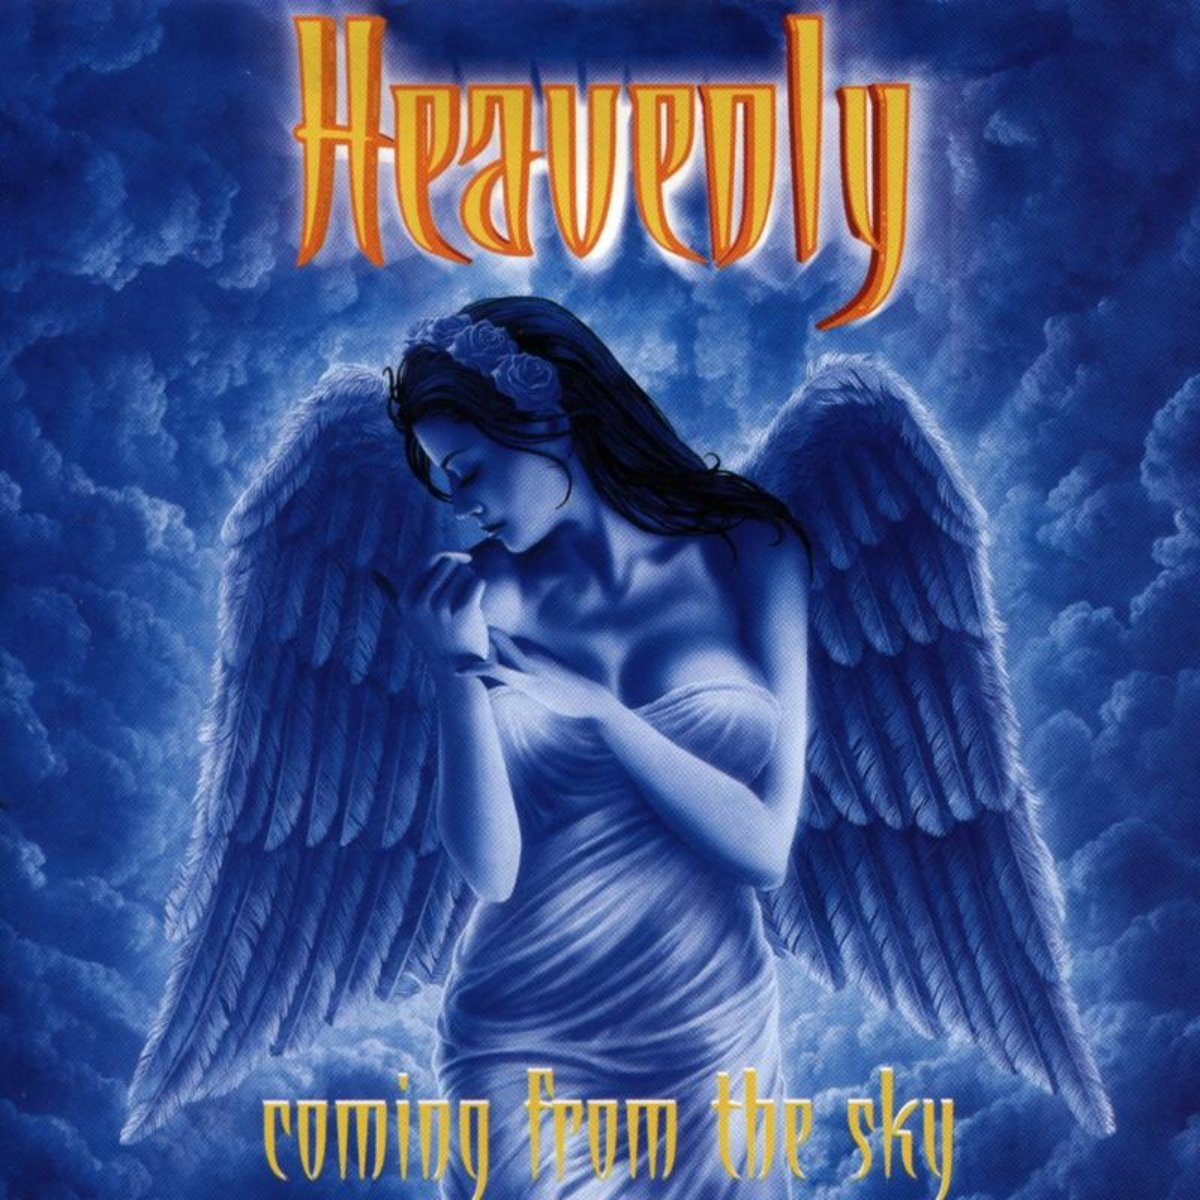 Heavenly - Coming From The Sky (2000) [FLAC] Download